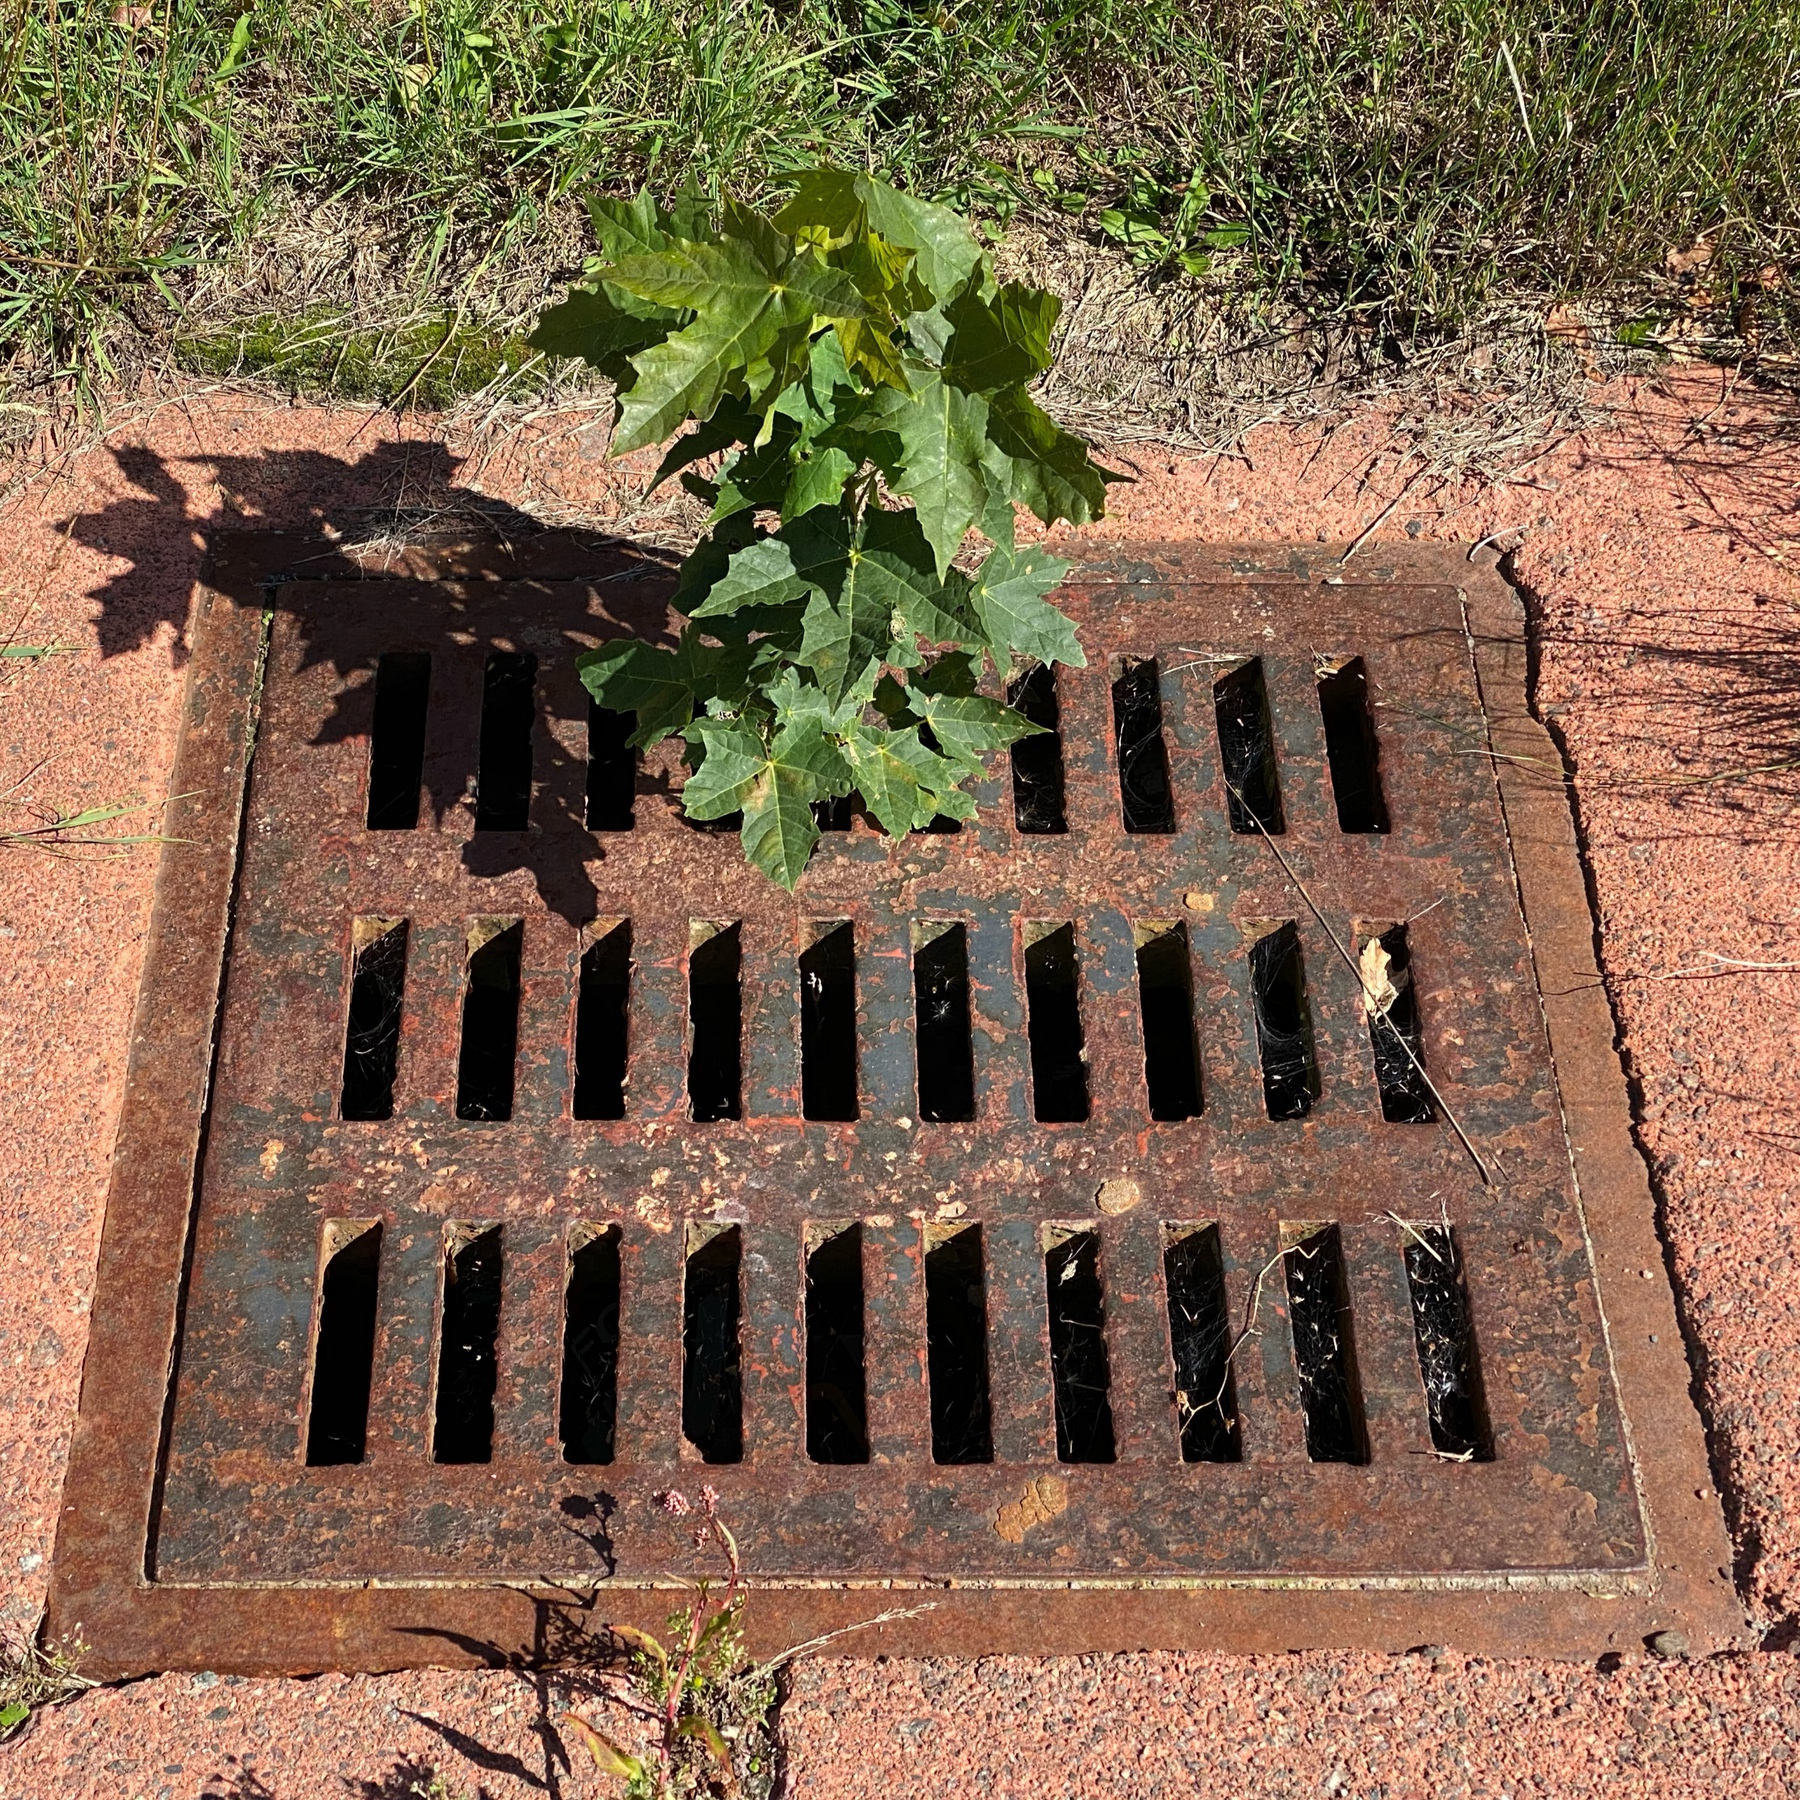 Plant growing out of sewer grate.